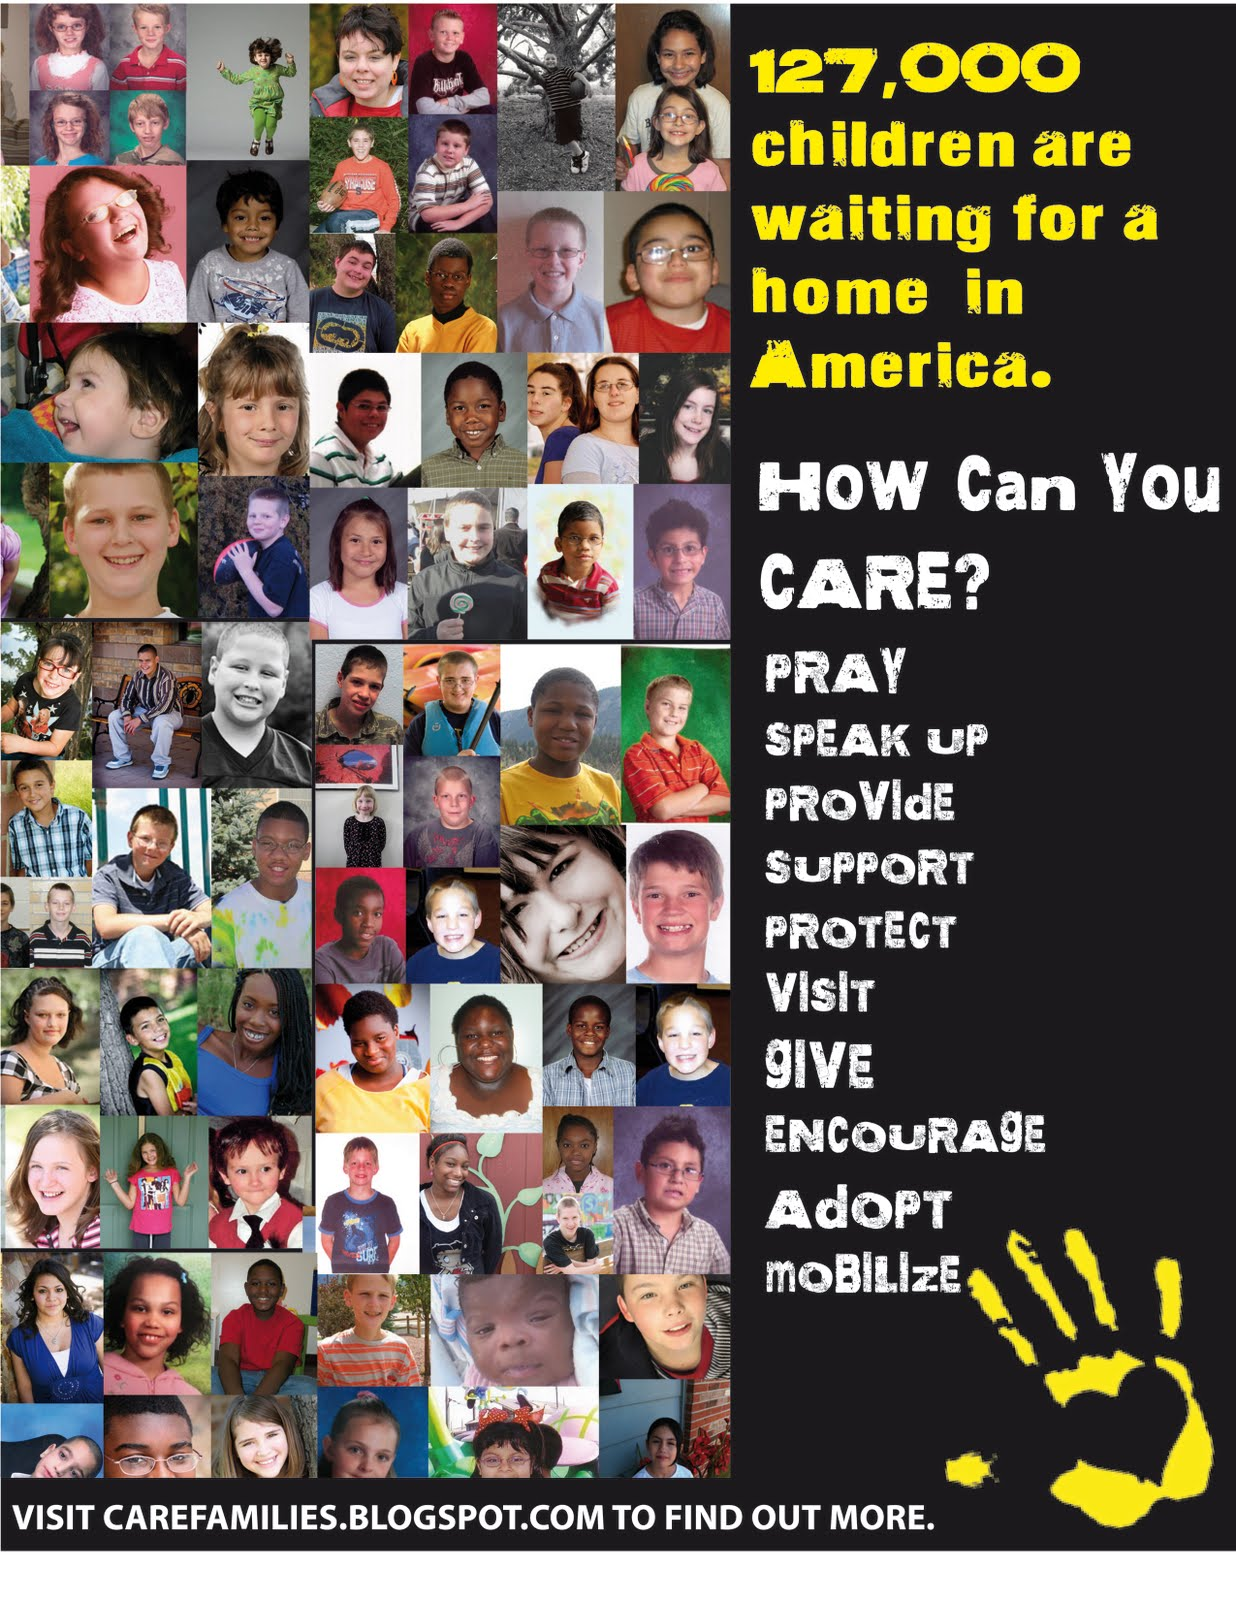 Last November Care Shared This List Of Children In Colorado Waiting For  Families To Adopt Them And Welcome Them Home Many Peoplemitted To  Praying For